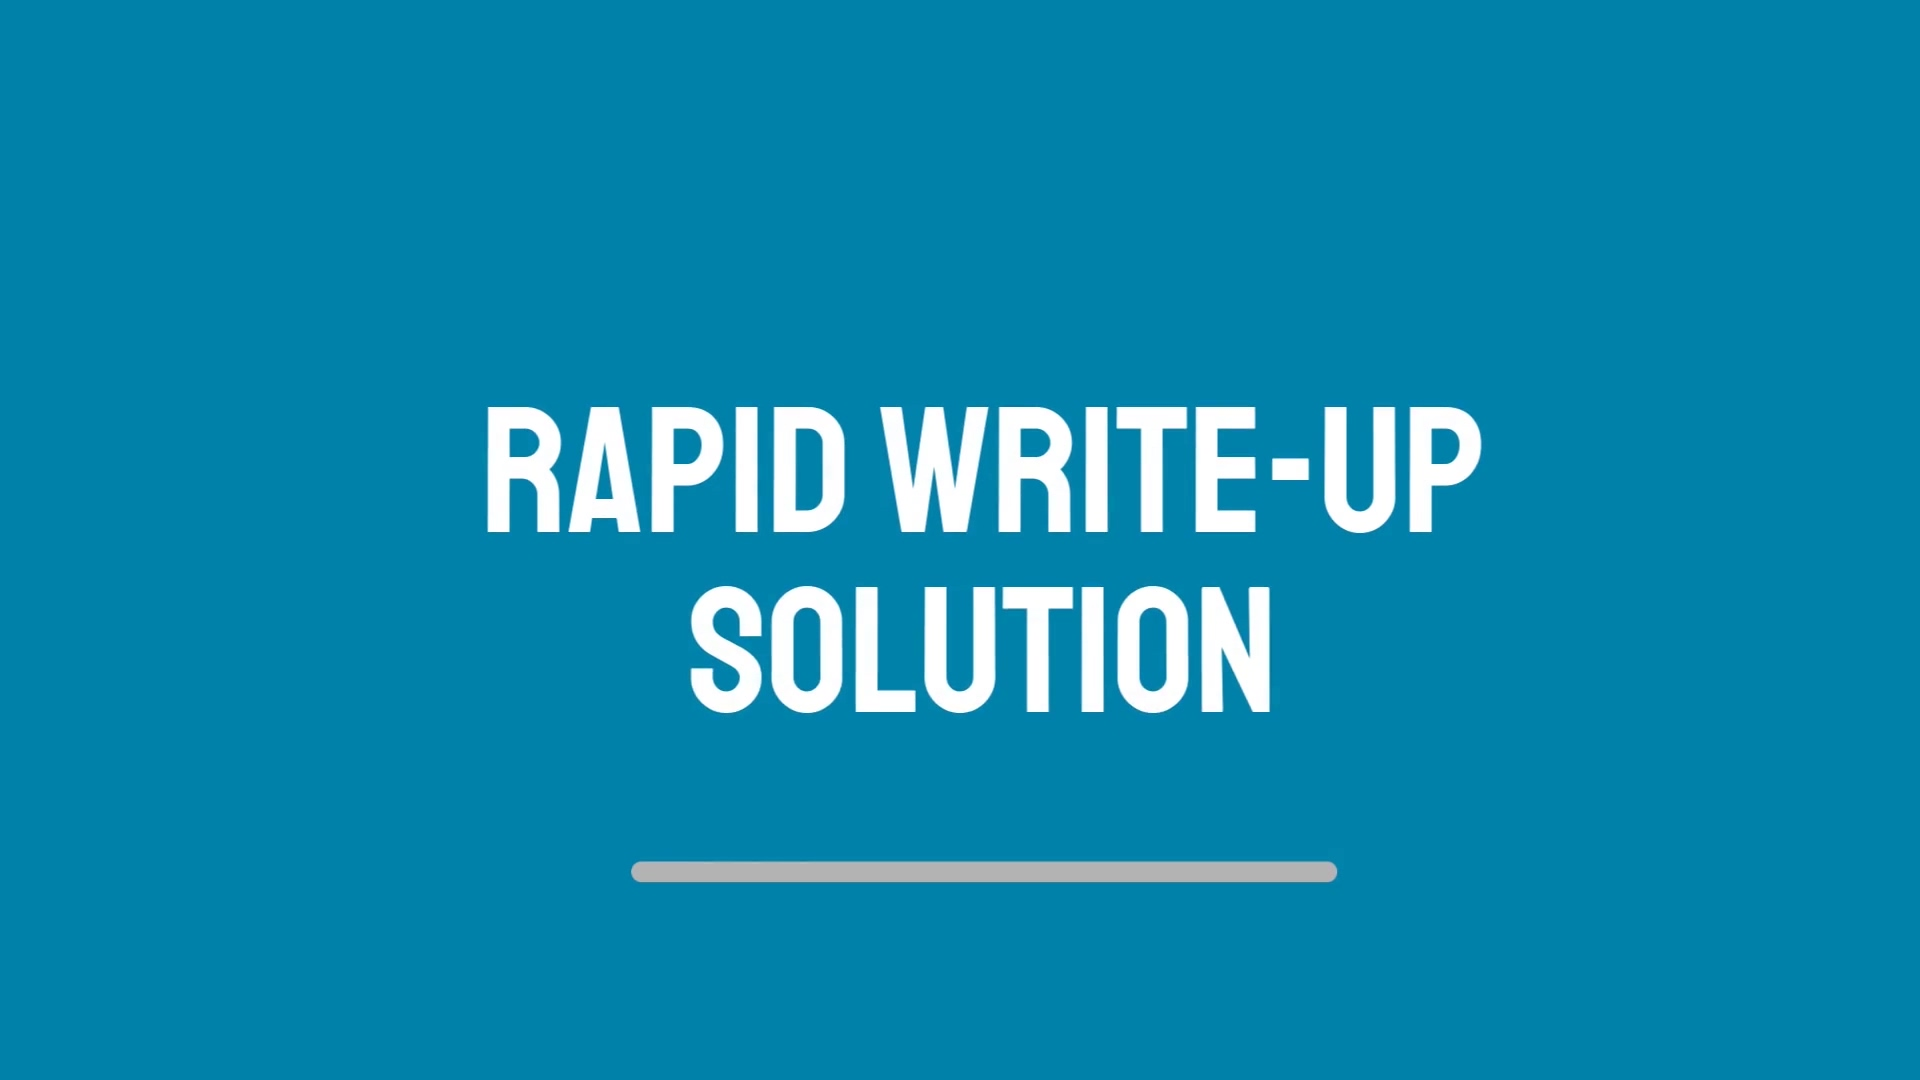 Rapid Write-up Solution Video